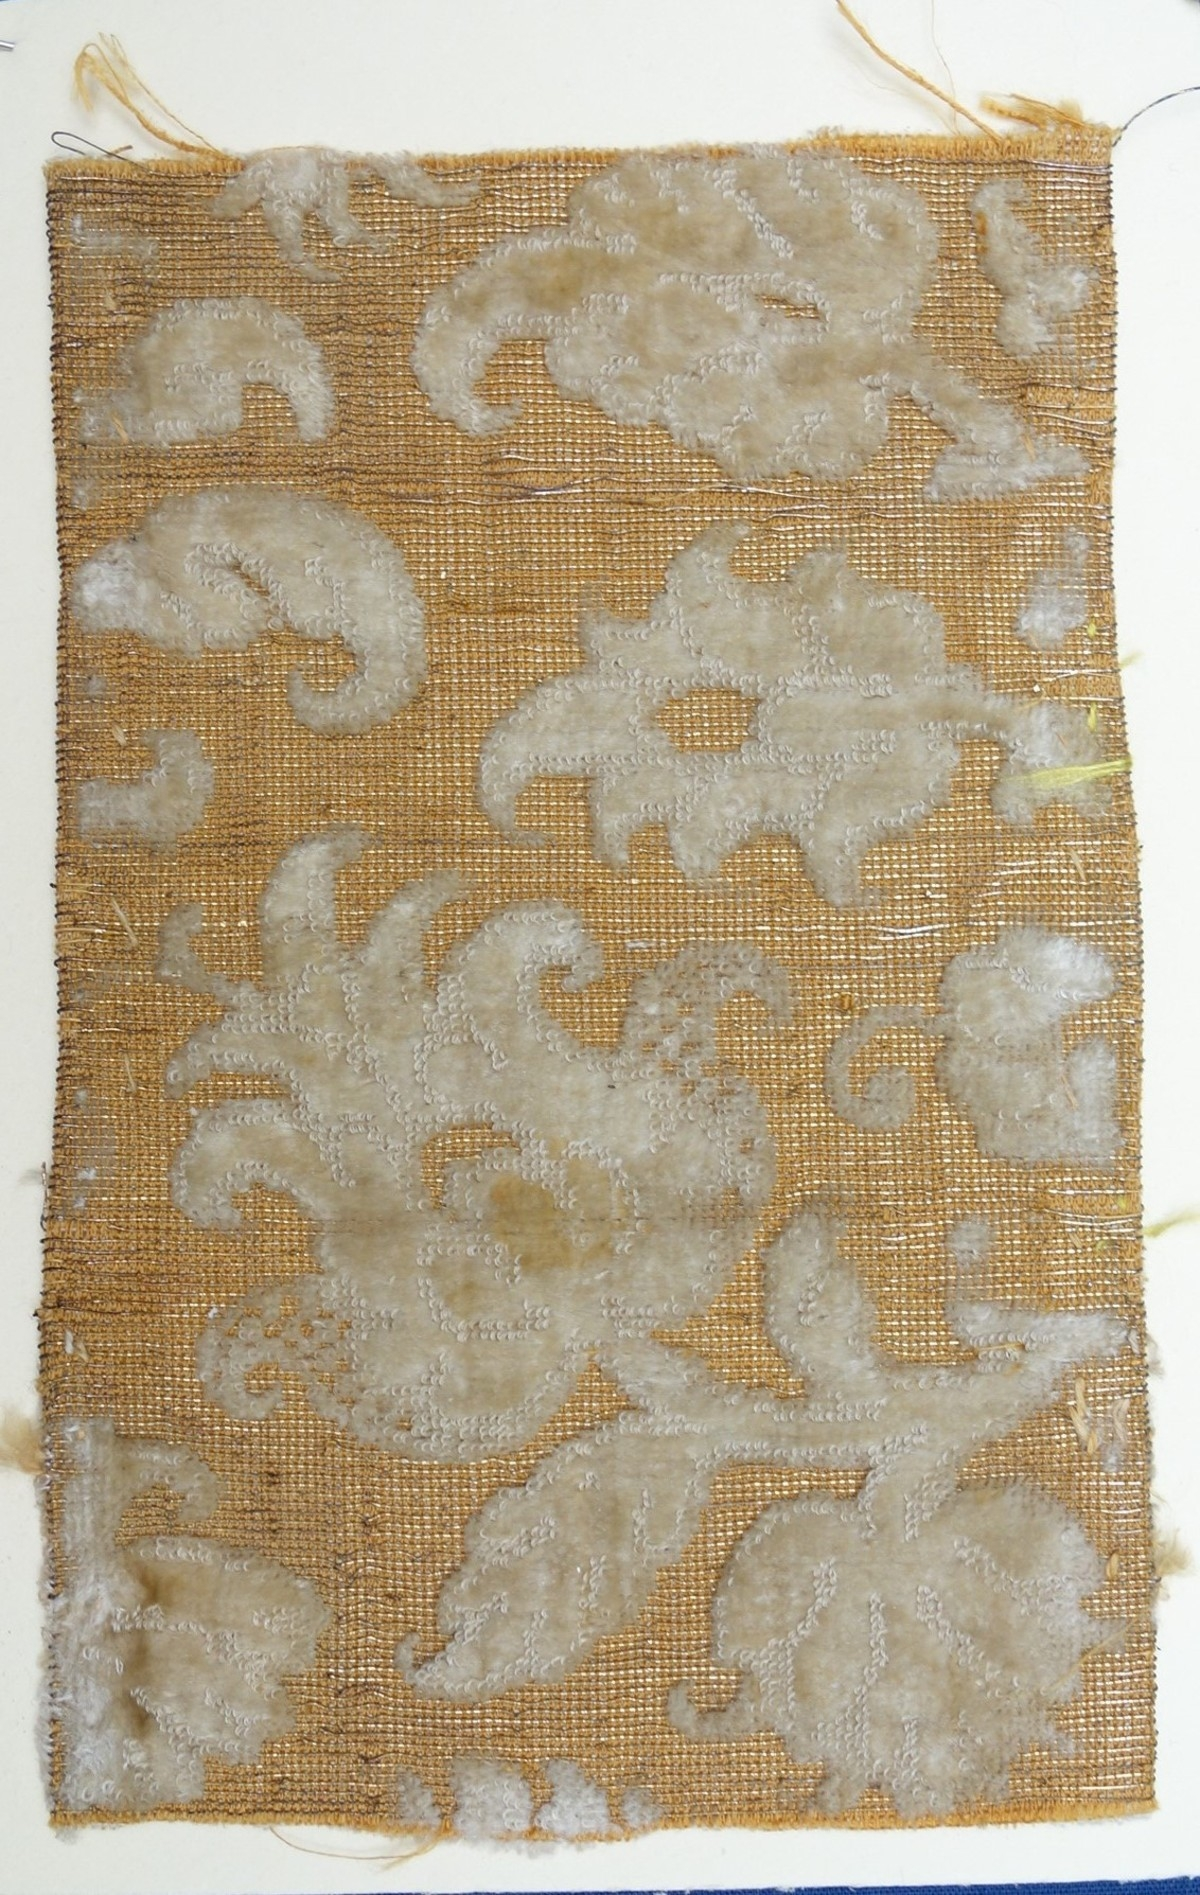 White velvet with metal thread, early 17th century (Europe).